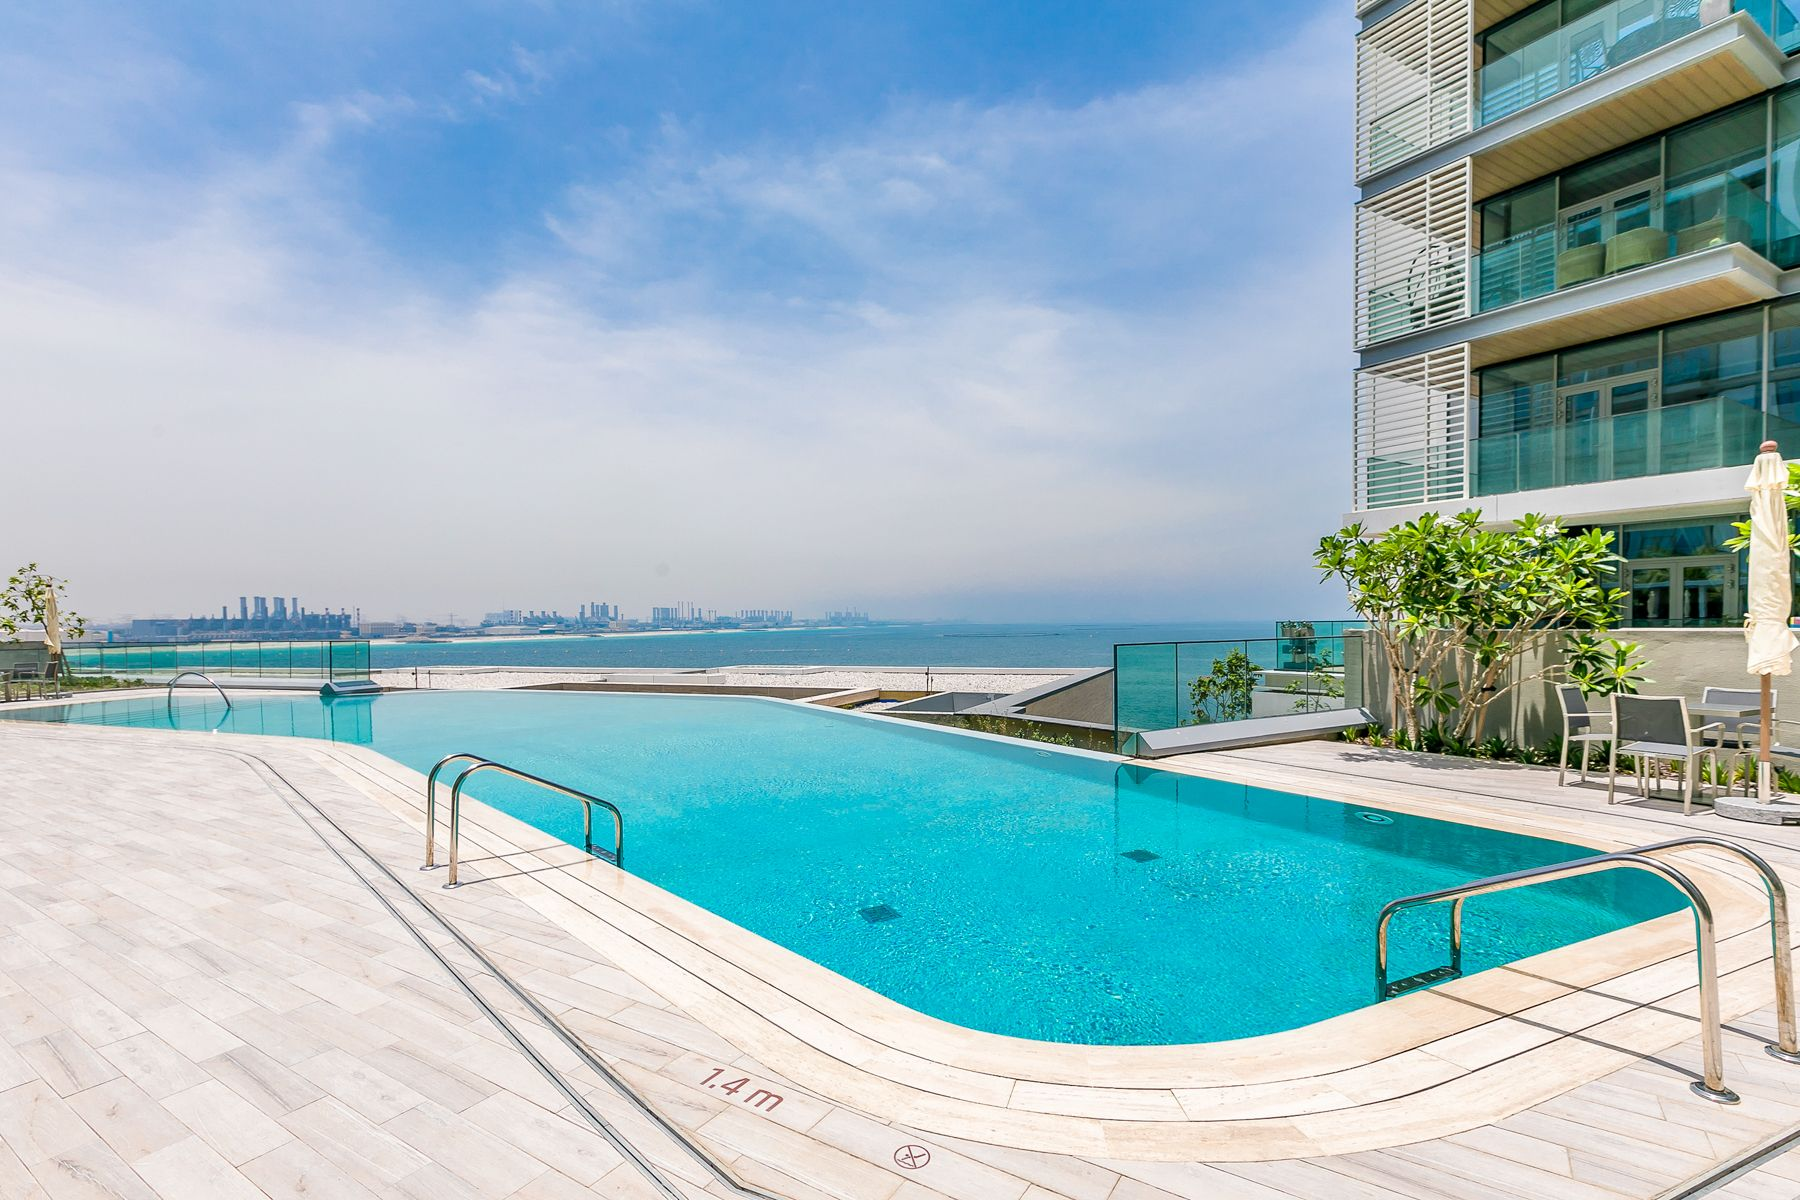 Apartment for Rent in Apartment Building 9, Bluewaters